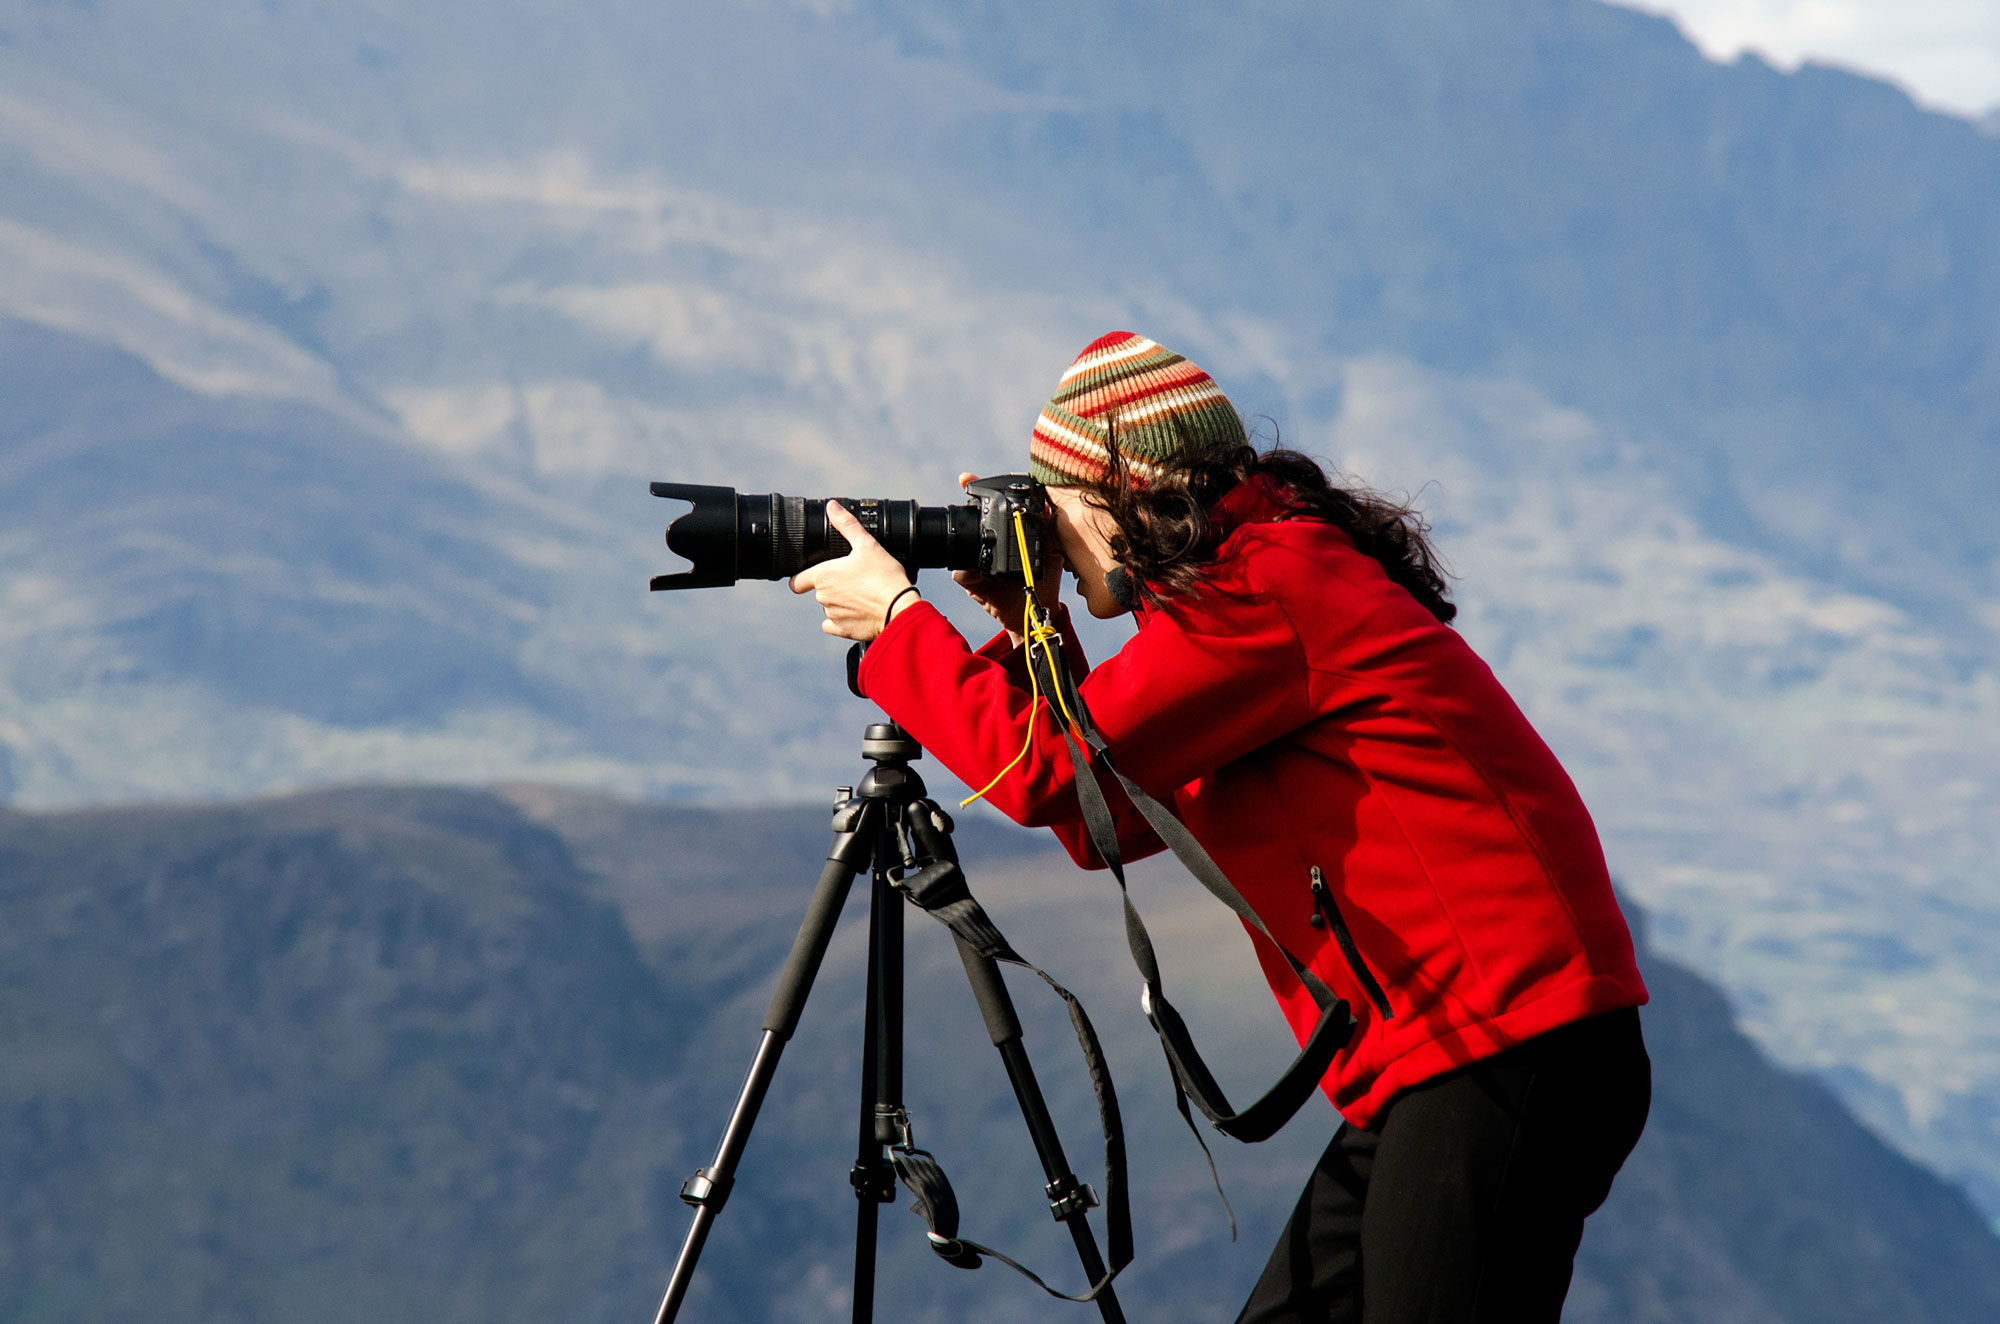 A tripod or monopod will help steady your telephoto view and images.